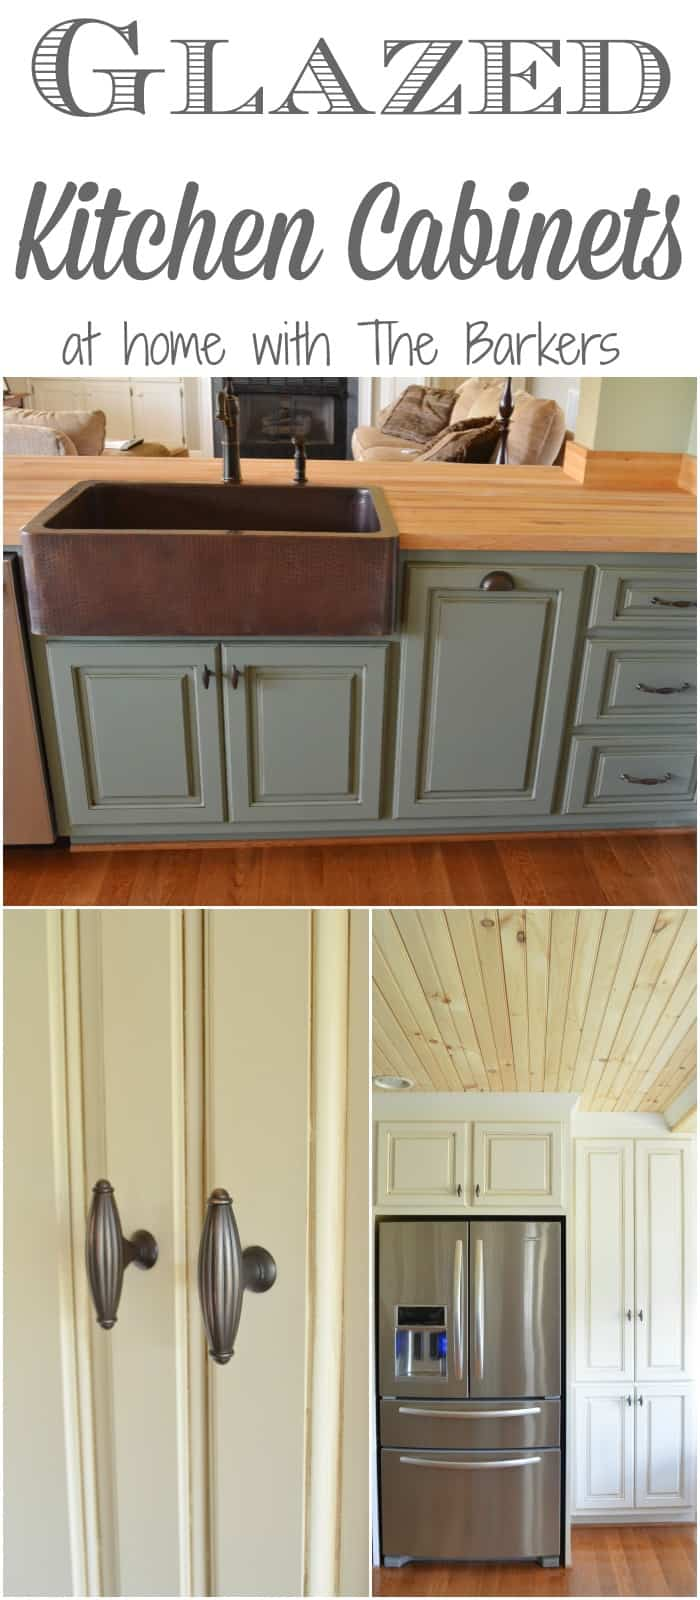 Captivating Glazed Kitchen Cabinets